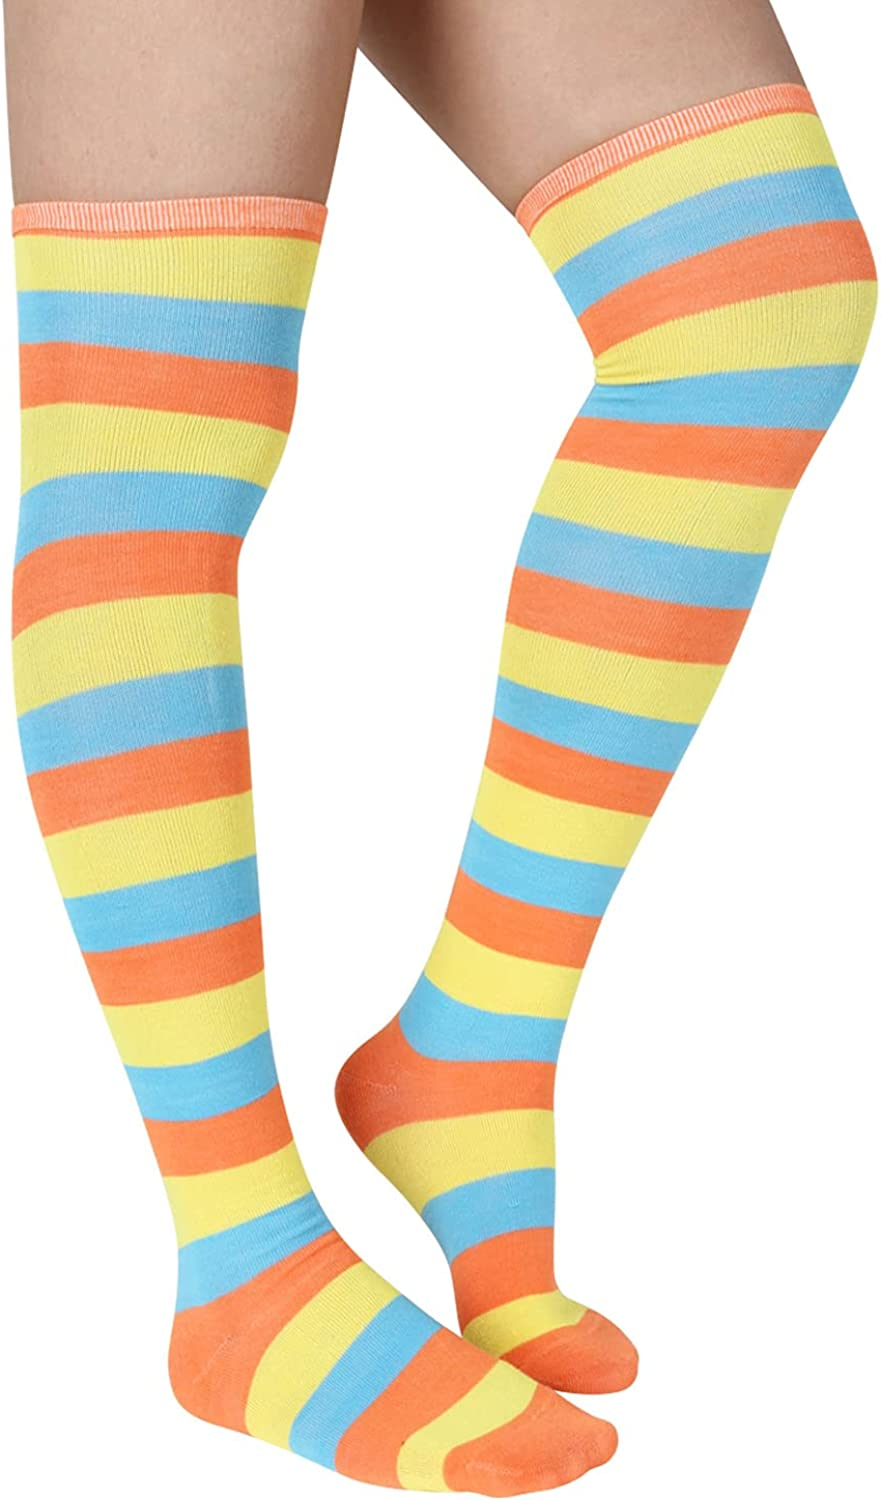 Womens Max 45% Special price OFF Striped Thigh Highs Socks Colorful Novelty Cotton Girls O